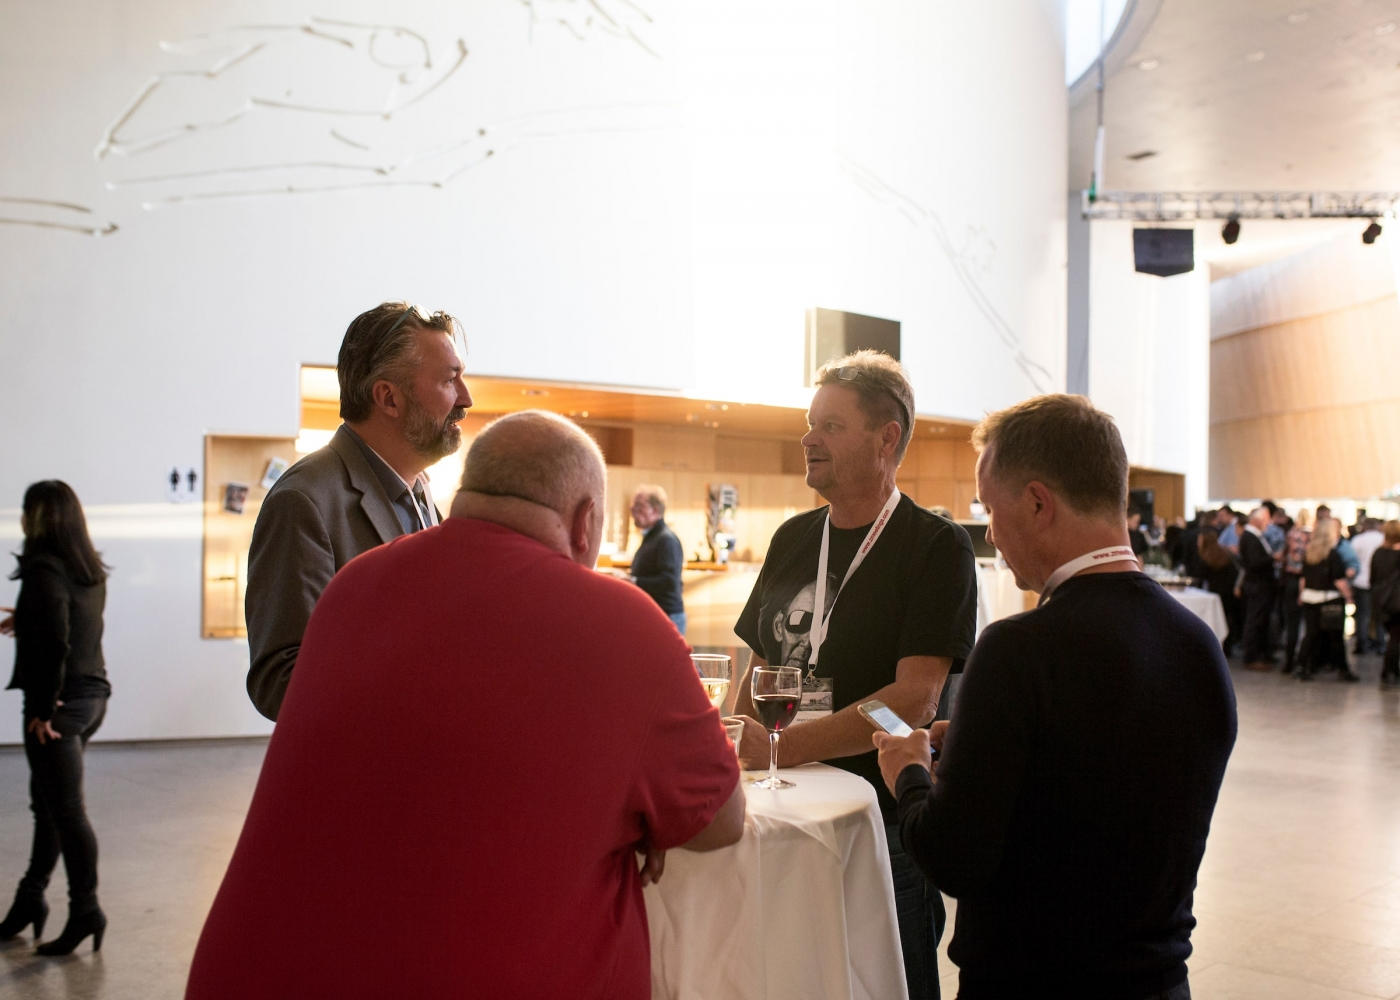 VNTM17 participants networking. Photo by Aningaaq Rosing Carlsen - Visit Greenland